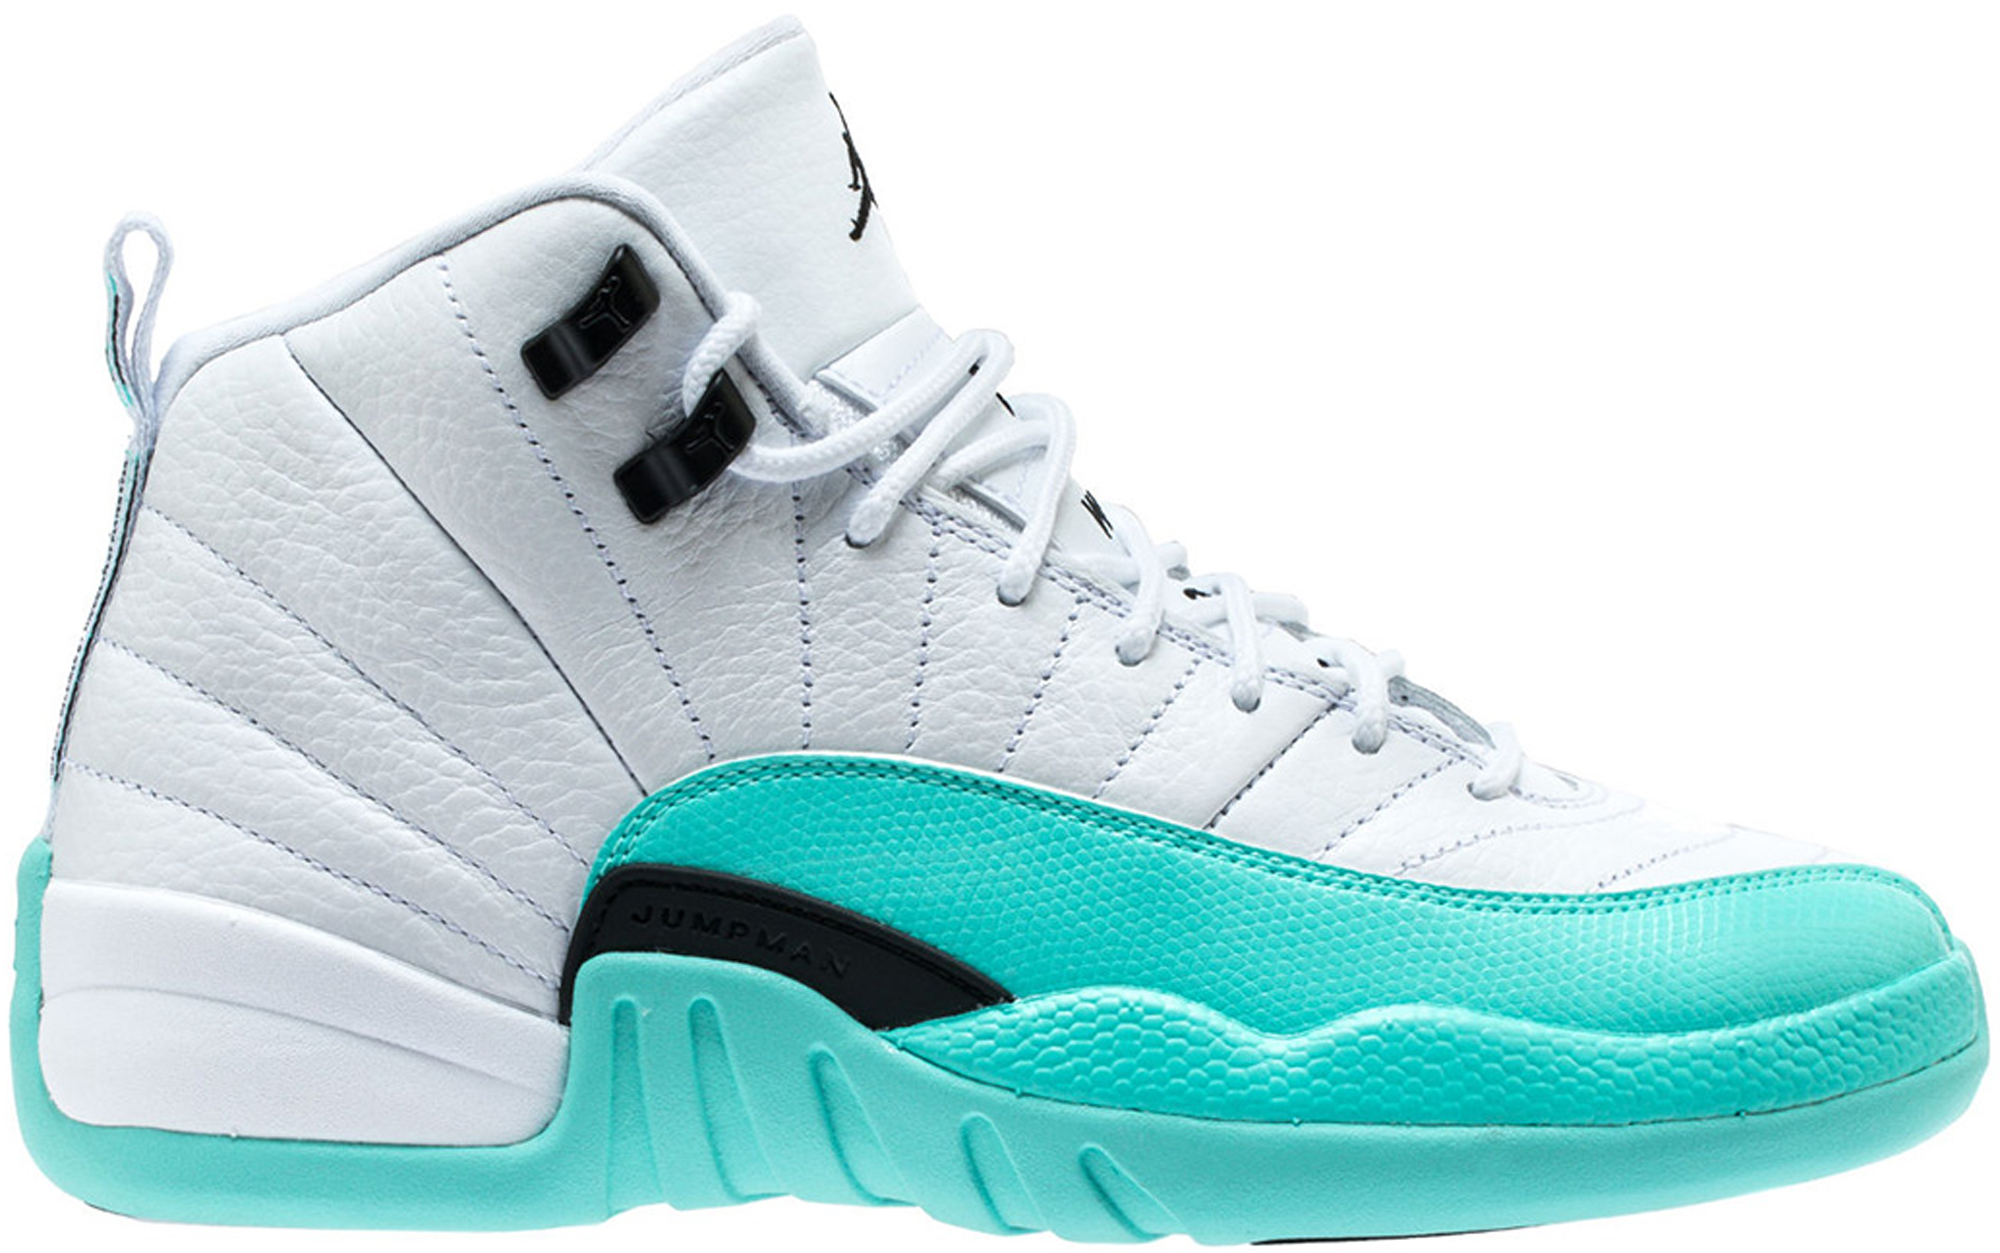 timeless design 9ad78 f587e Girls Air Jordan 12 Light Aqua